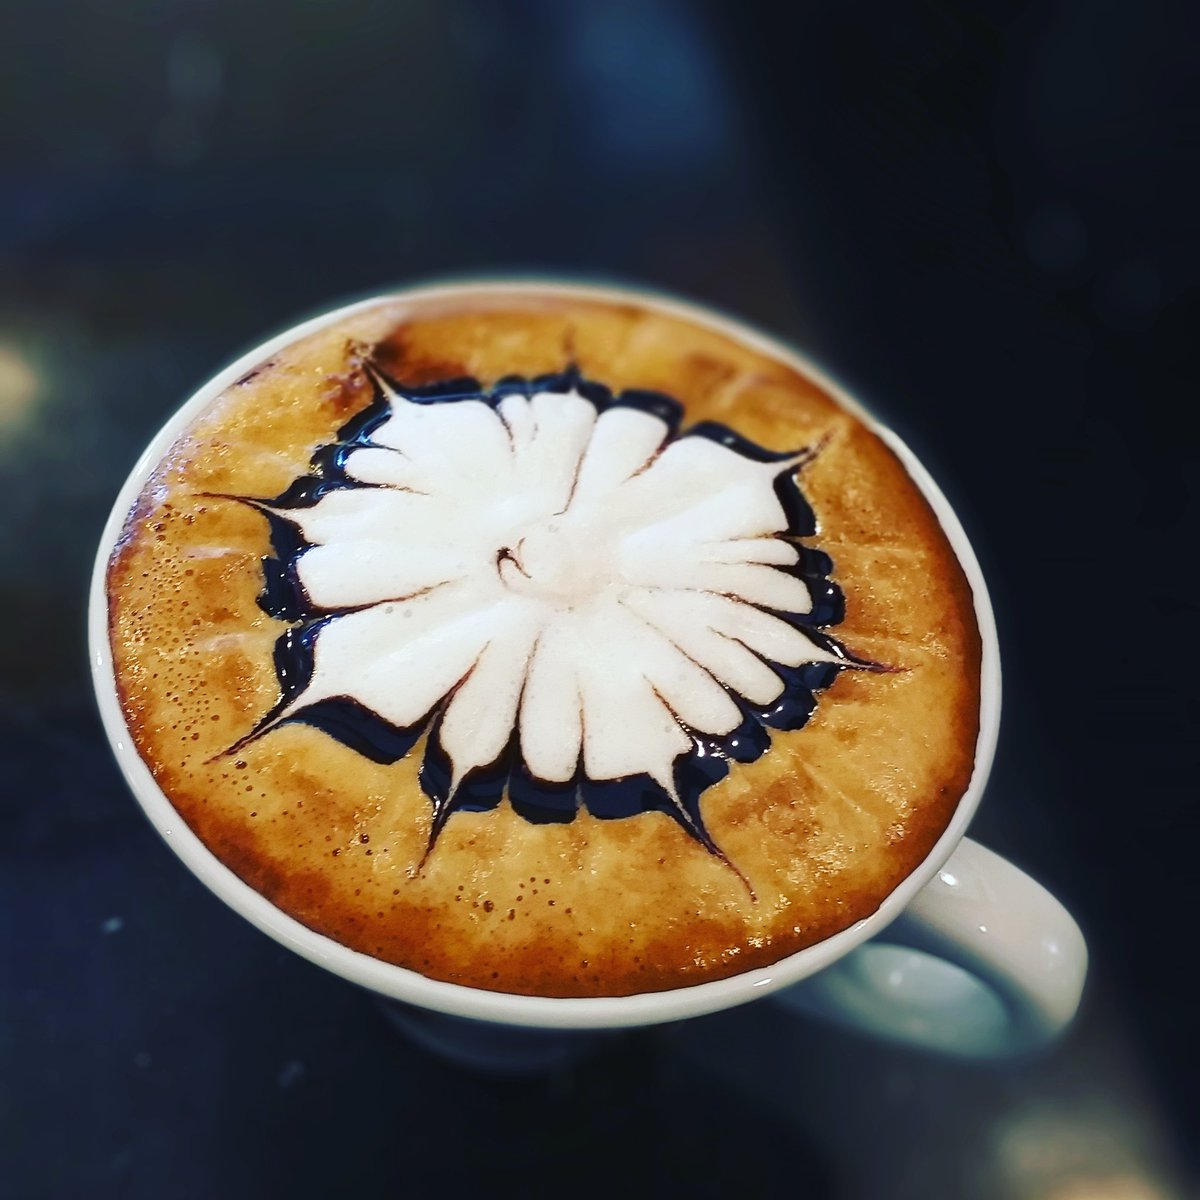 #coffeeoftheday #coffeephotography #photocoffee #artcoffee #caferacer #bestcafeintown #photographer #passionart #coffeeobsession